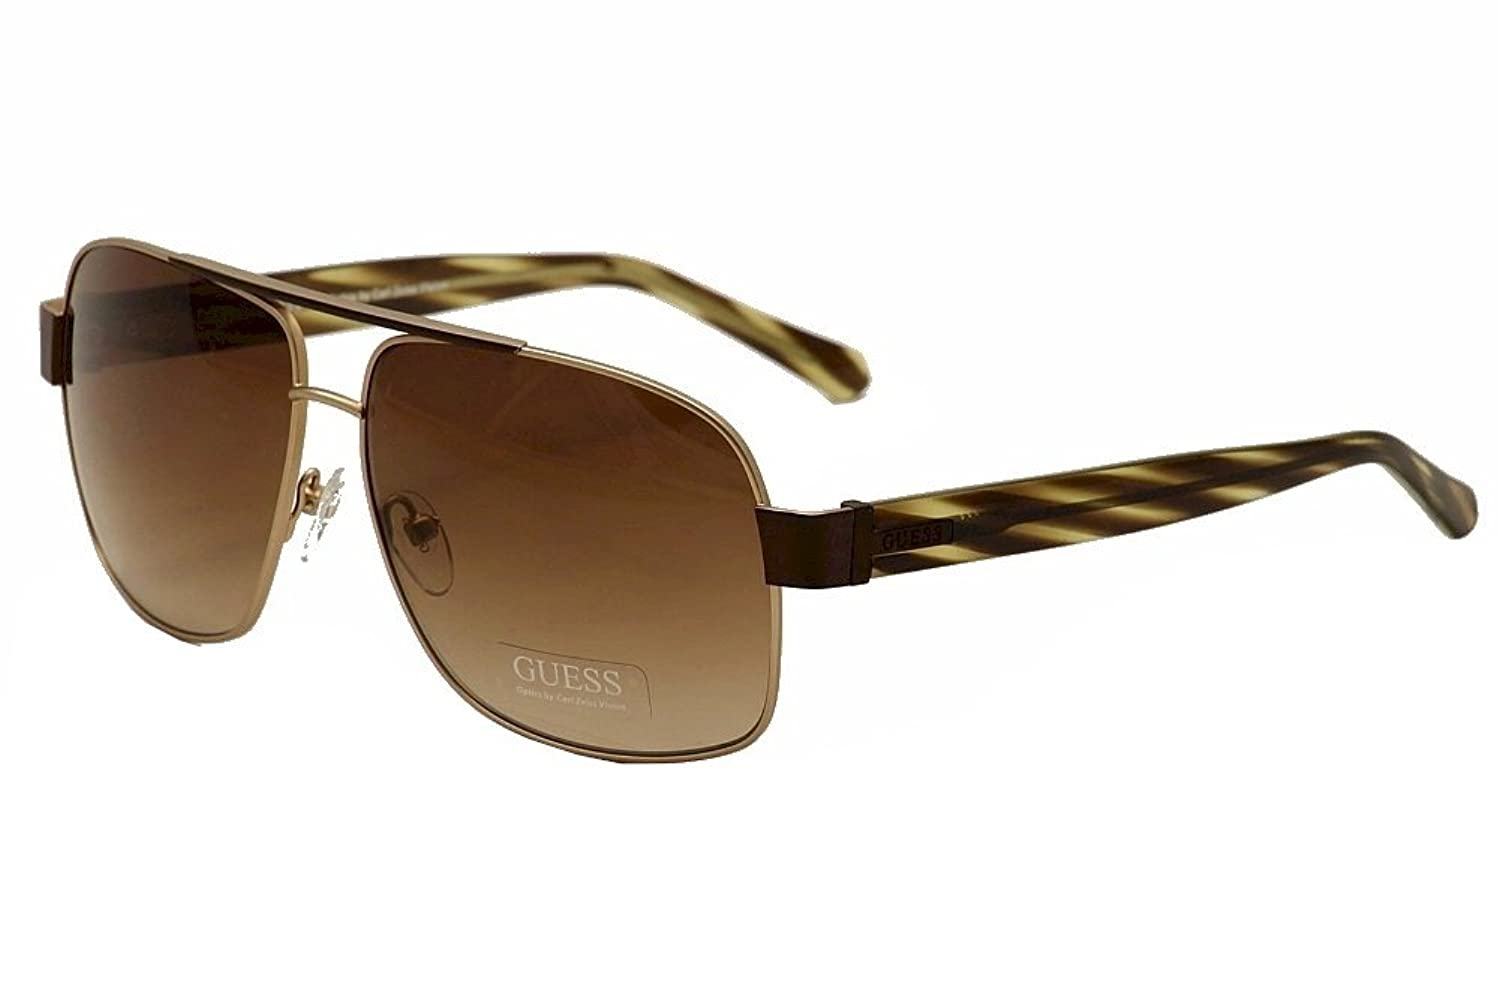 Guess Sunglasses - 6741 / Frame: Gold with Brown Stripe Temples Lens: Brown Gradient